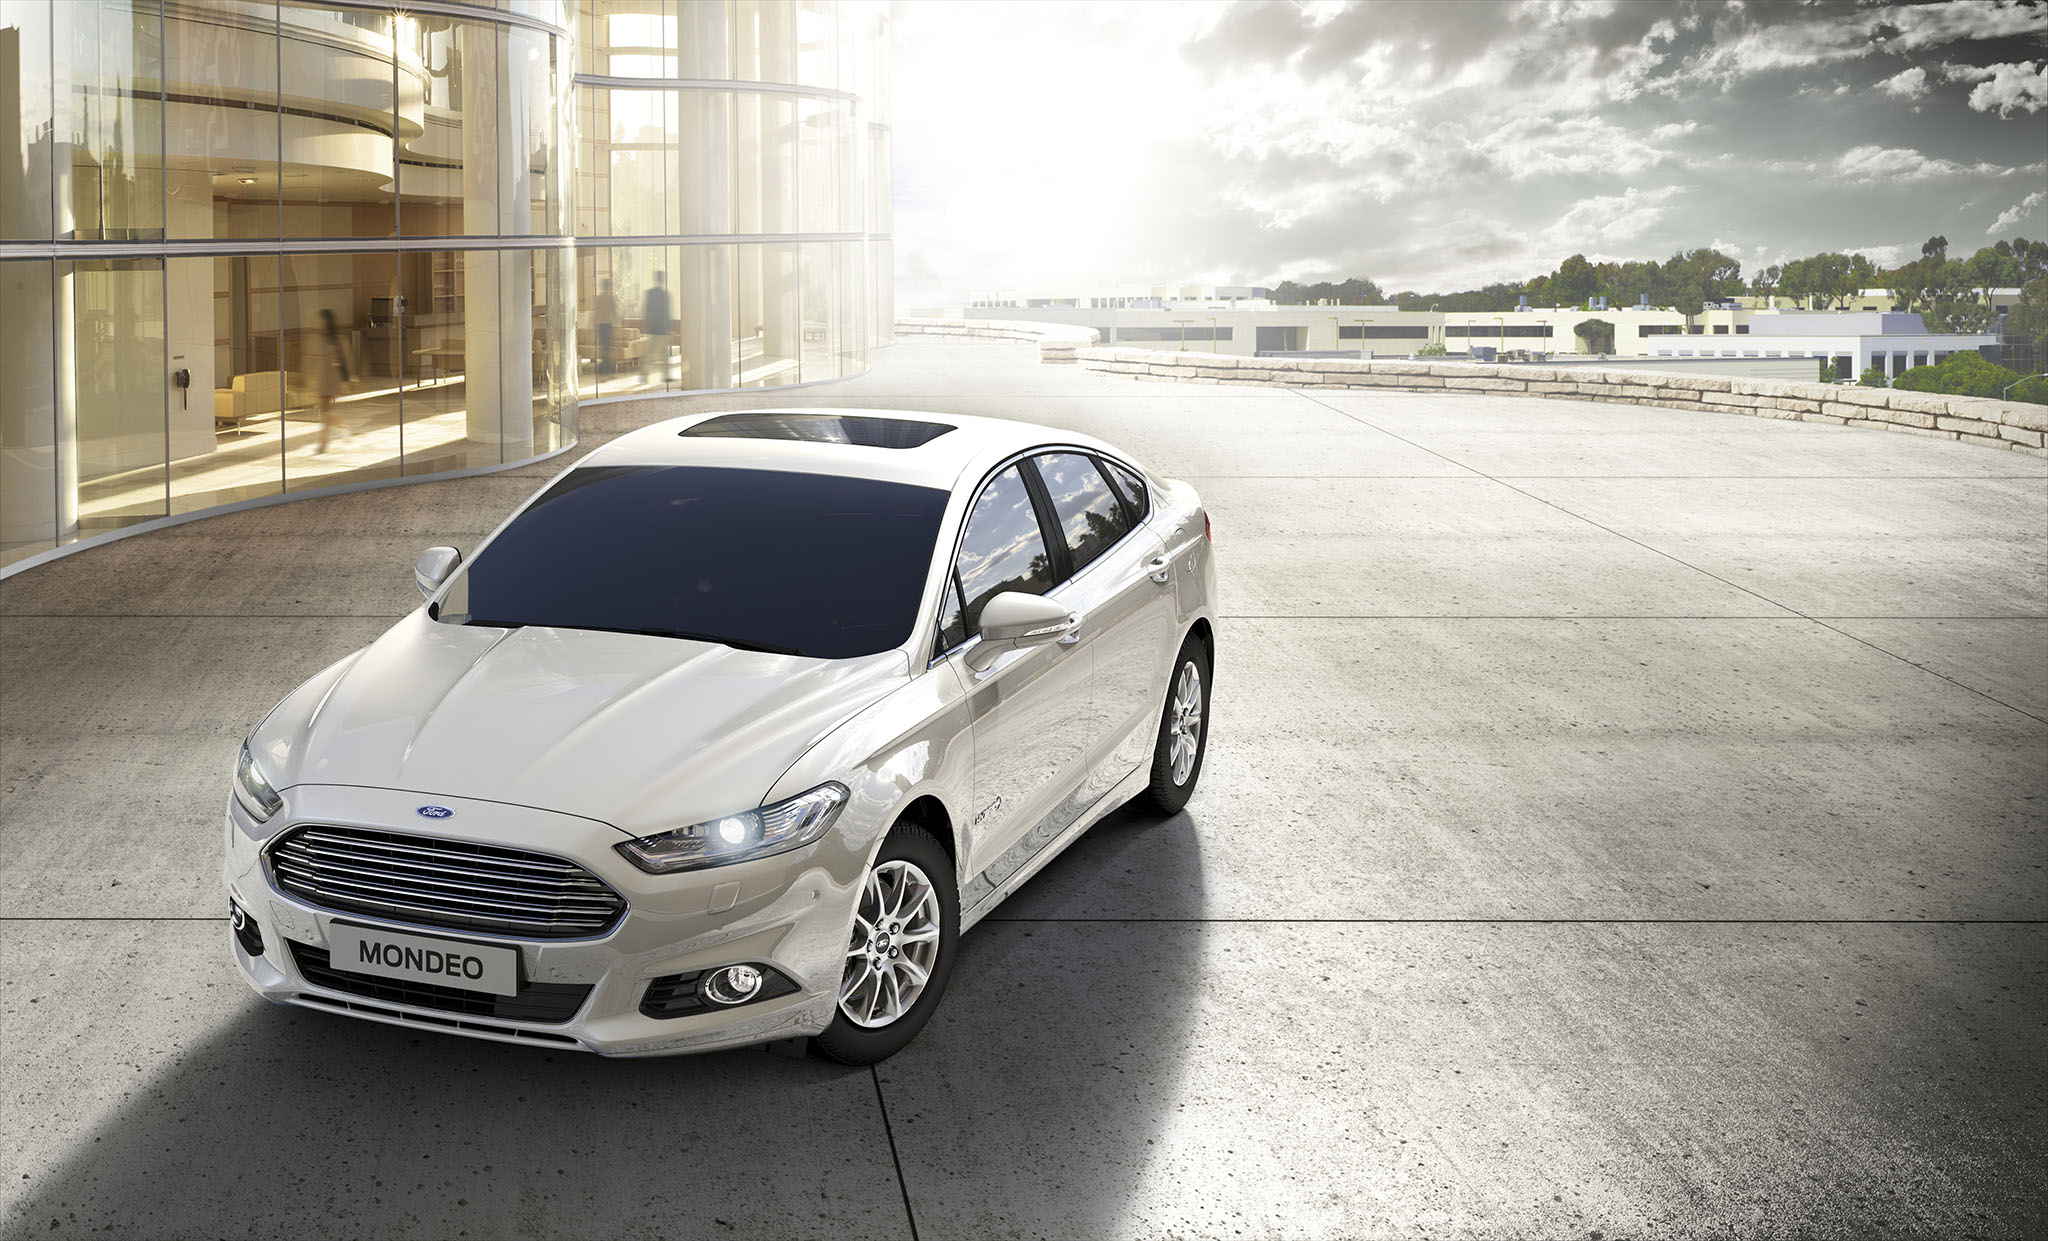 FordMondeo 01